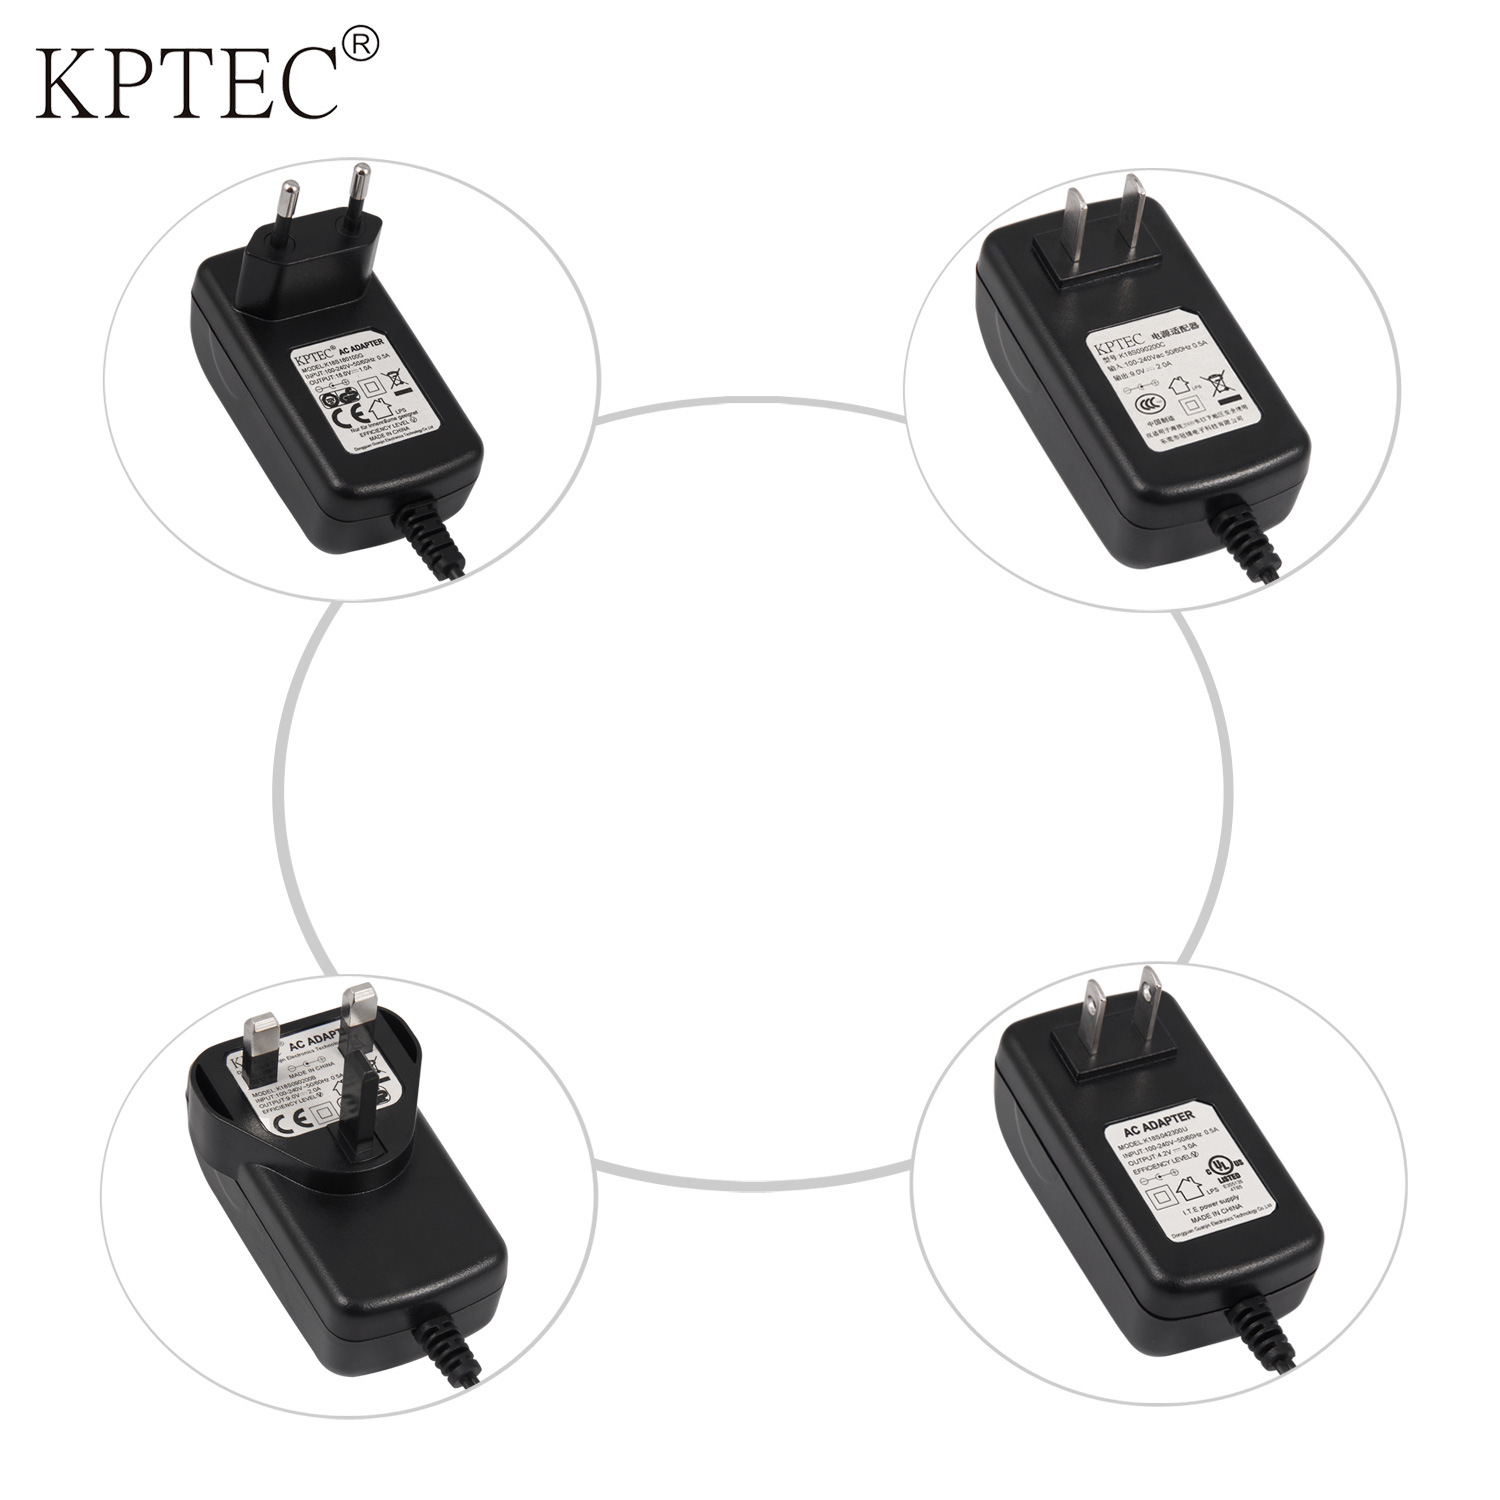 18W 12V 1.2A Power Adapter with USA Standard Plug